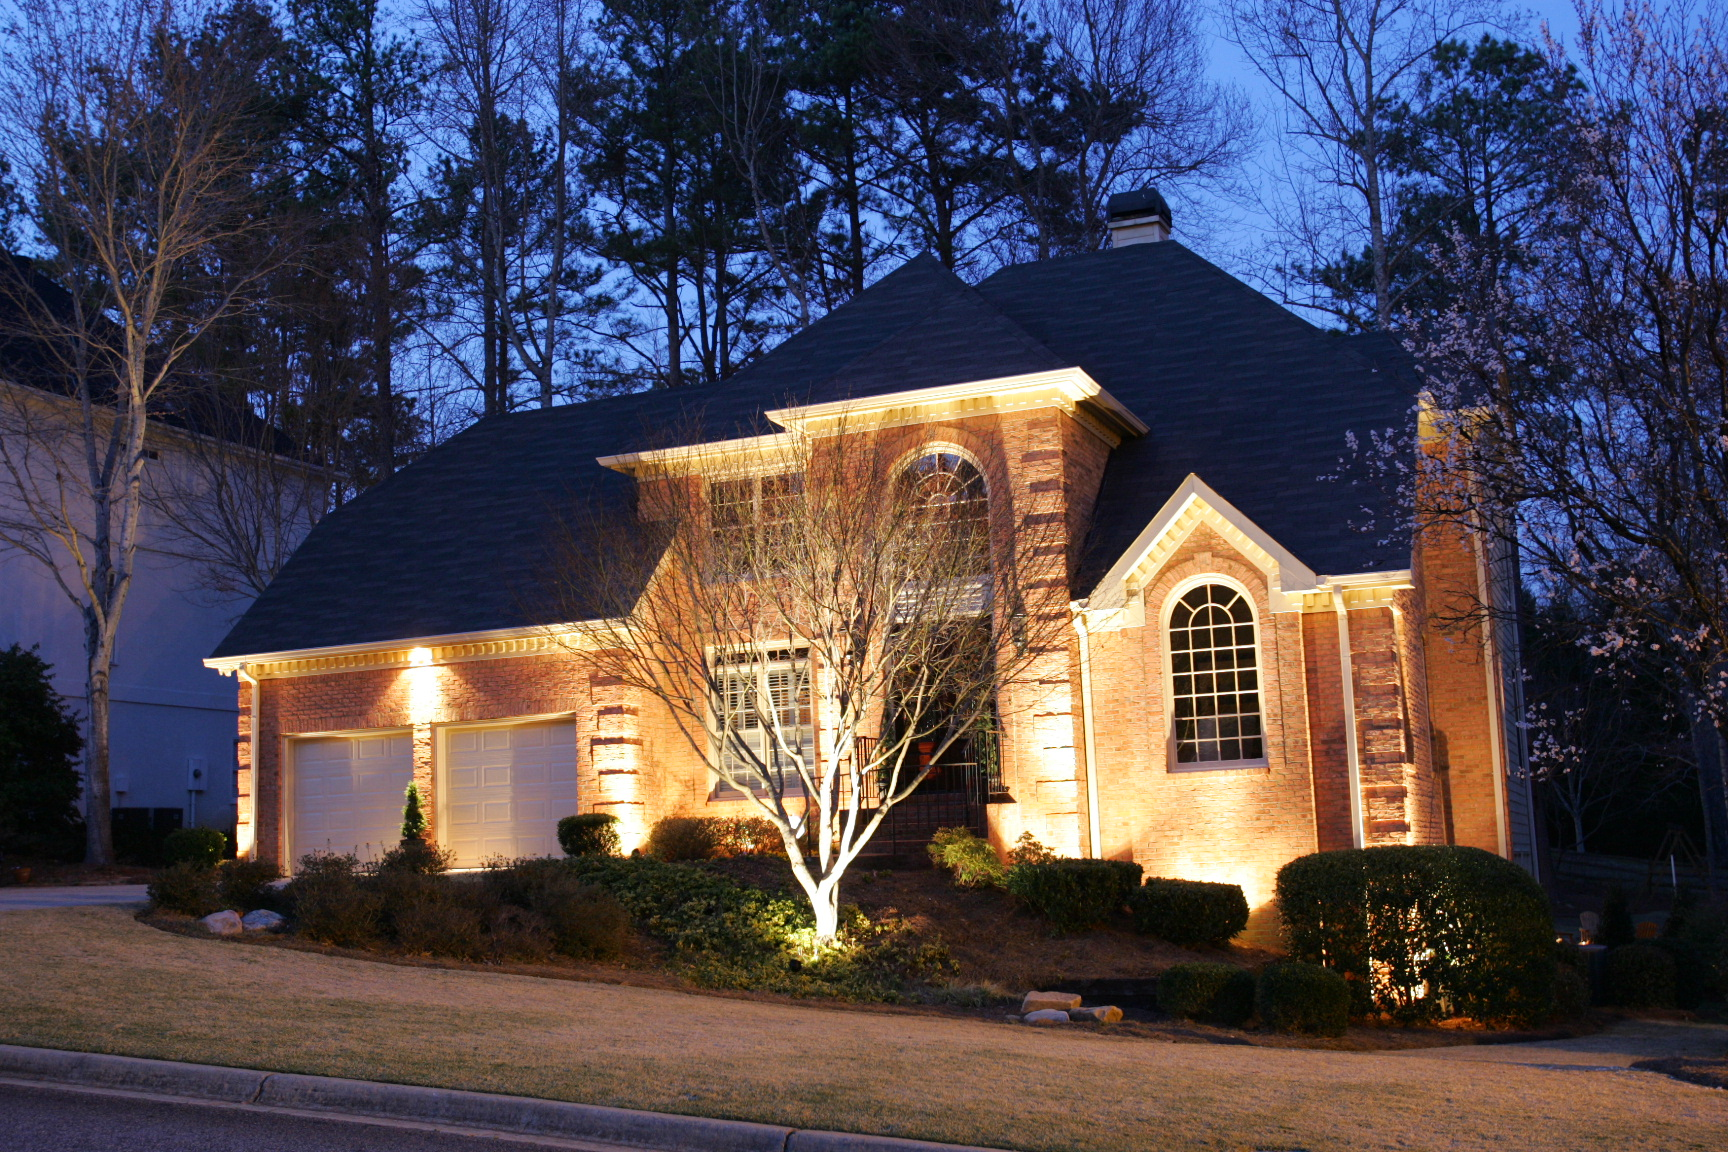 https://secureservercdn.net/198.71.233.197/f0f.f43.myftpupload.com/wp-content/uploads/2017/02/Landscape-Lighting-Birmingham-Alabama-Curb-Appeal-BlueSkyRain.com_.jpg